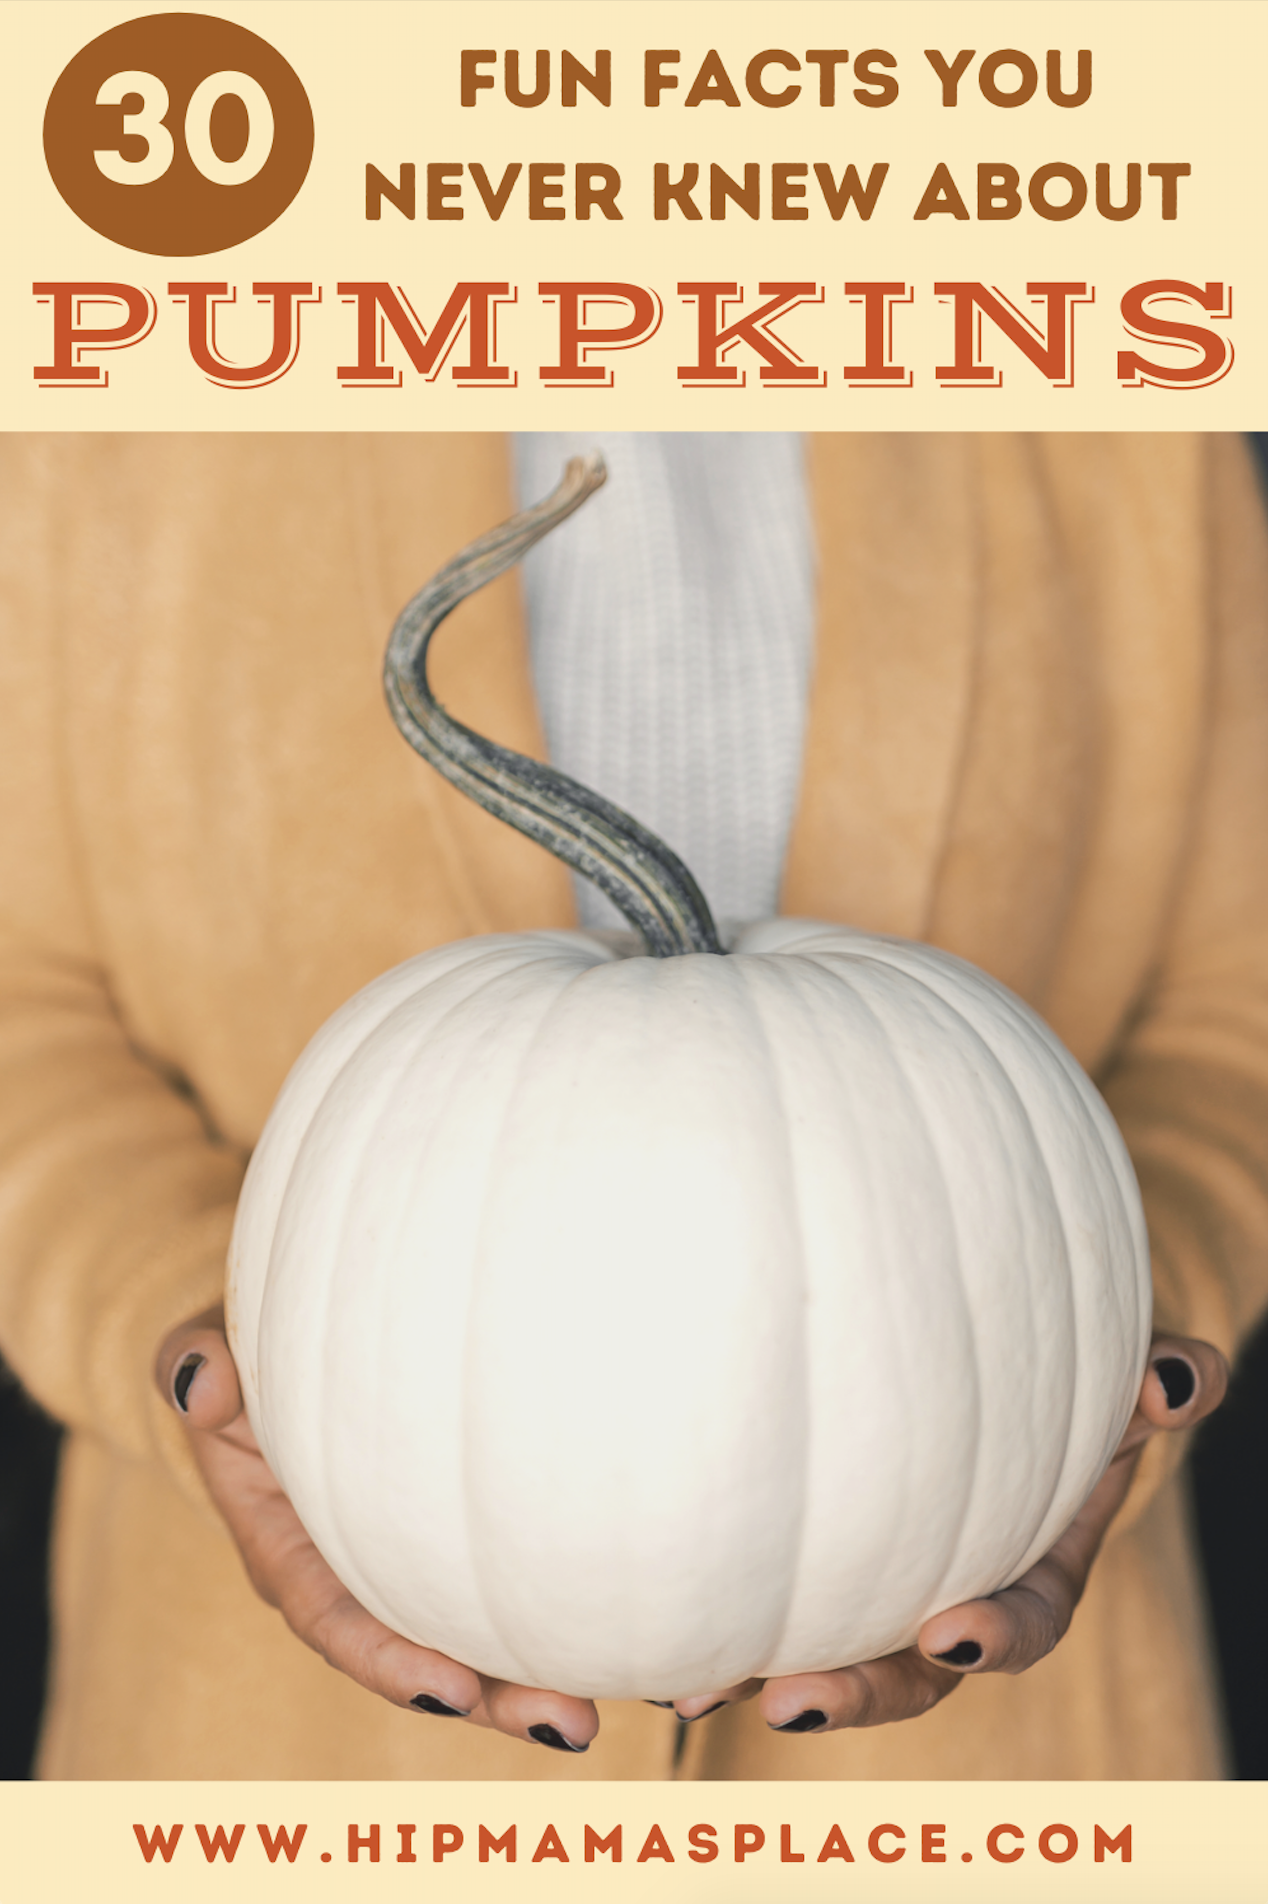 How well do you know about pumpkins? Here are 30 fun facts about pumpkins or pumpkin trivia to learn more about this Fall favorite fruit!